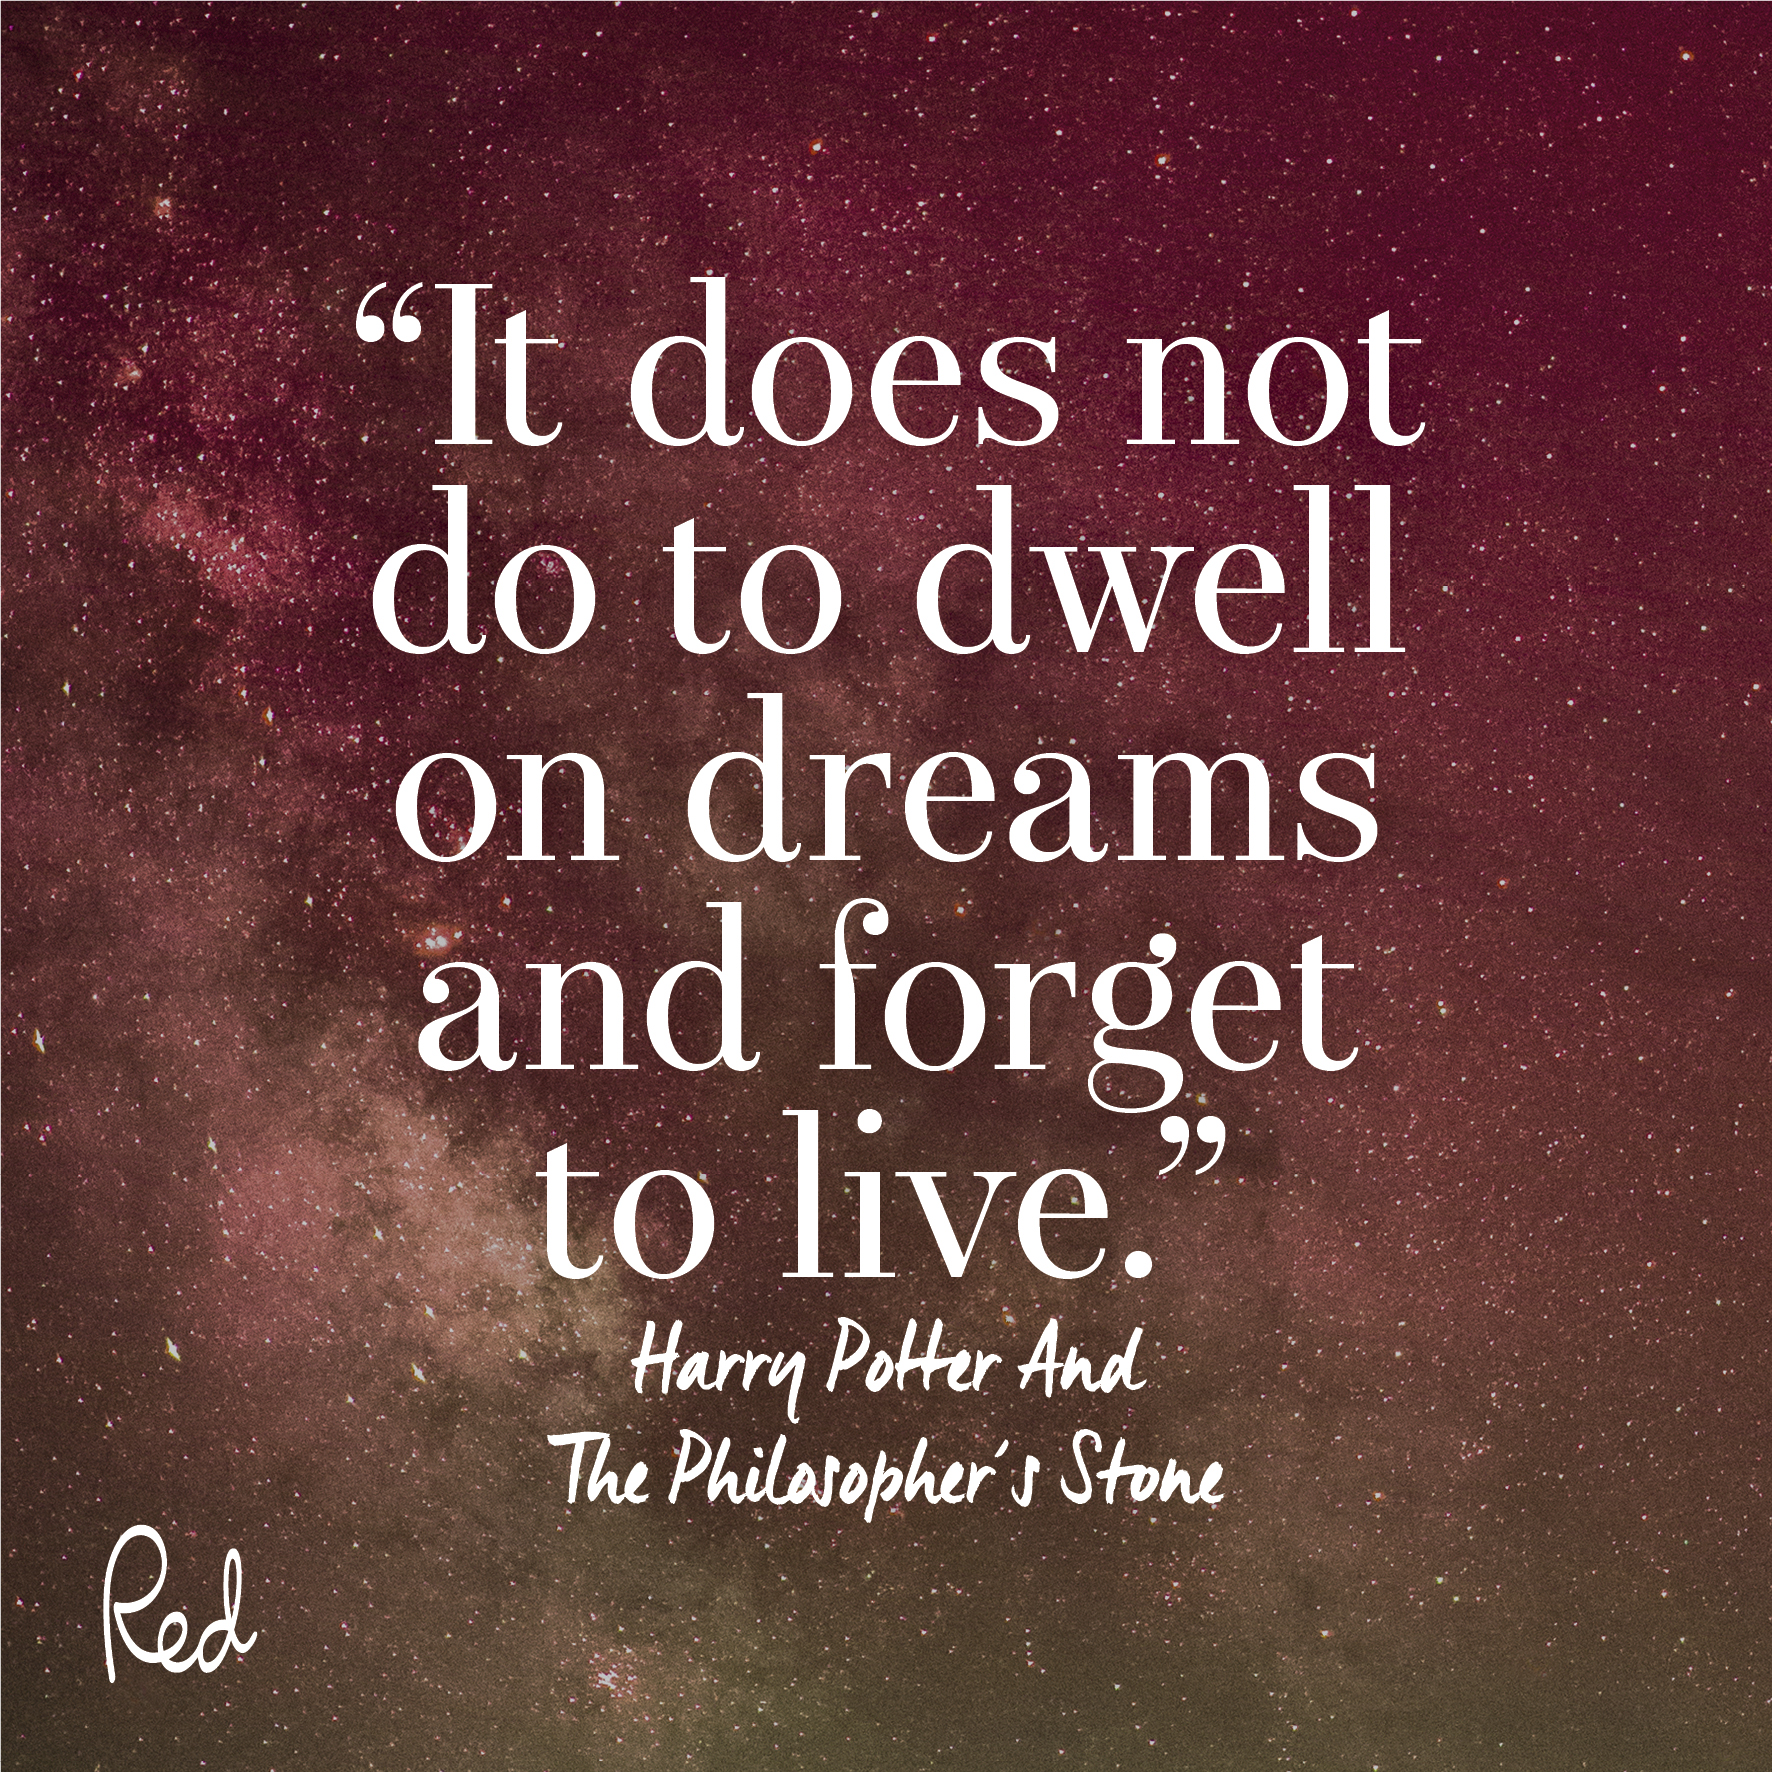 Quotes Harry Potter Best Harry Potter Quotes  Books  Culture  Red Online